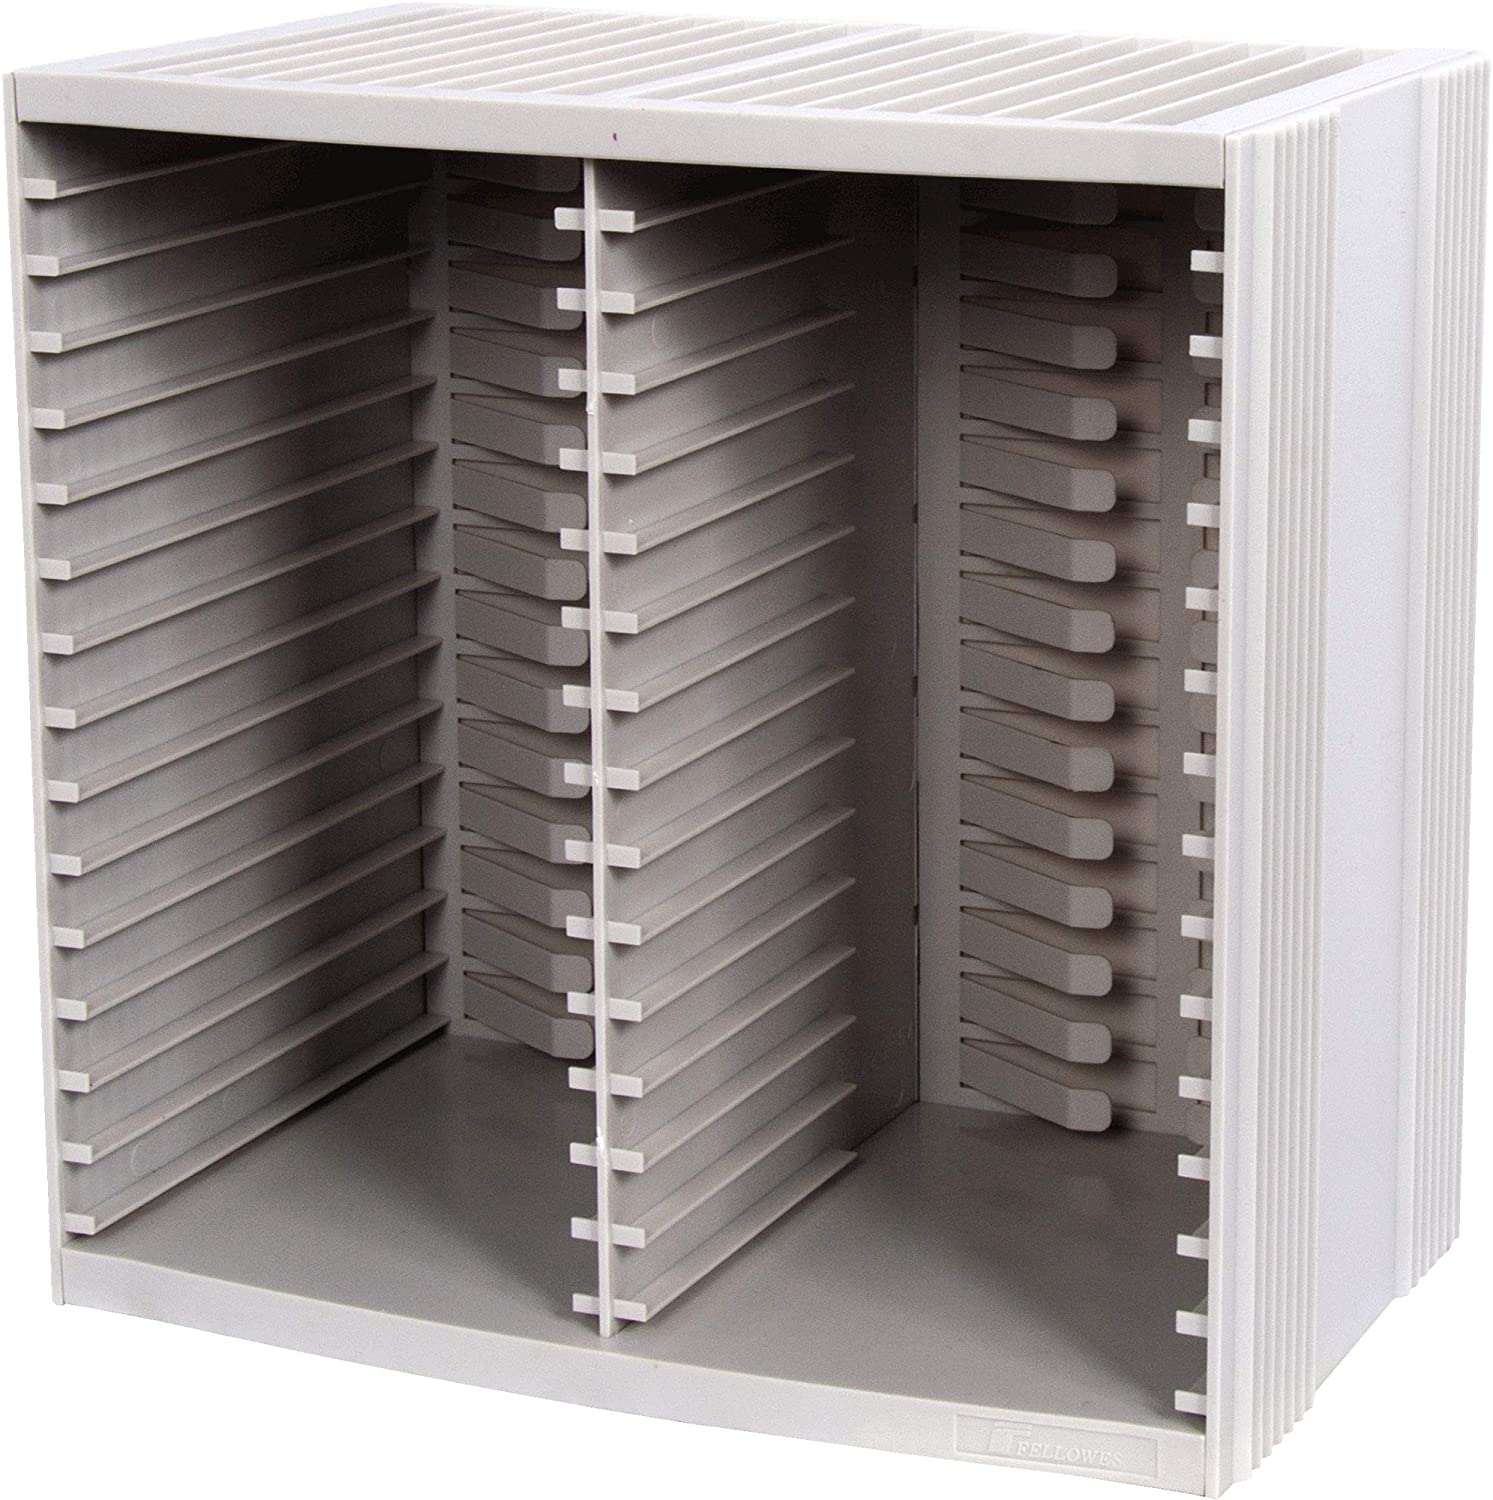 Title Fellowes CD Storage Unit, Holds 30 Discs + 18 on Top of CD Rack, Grey